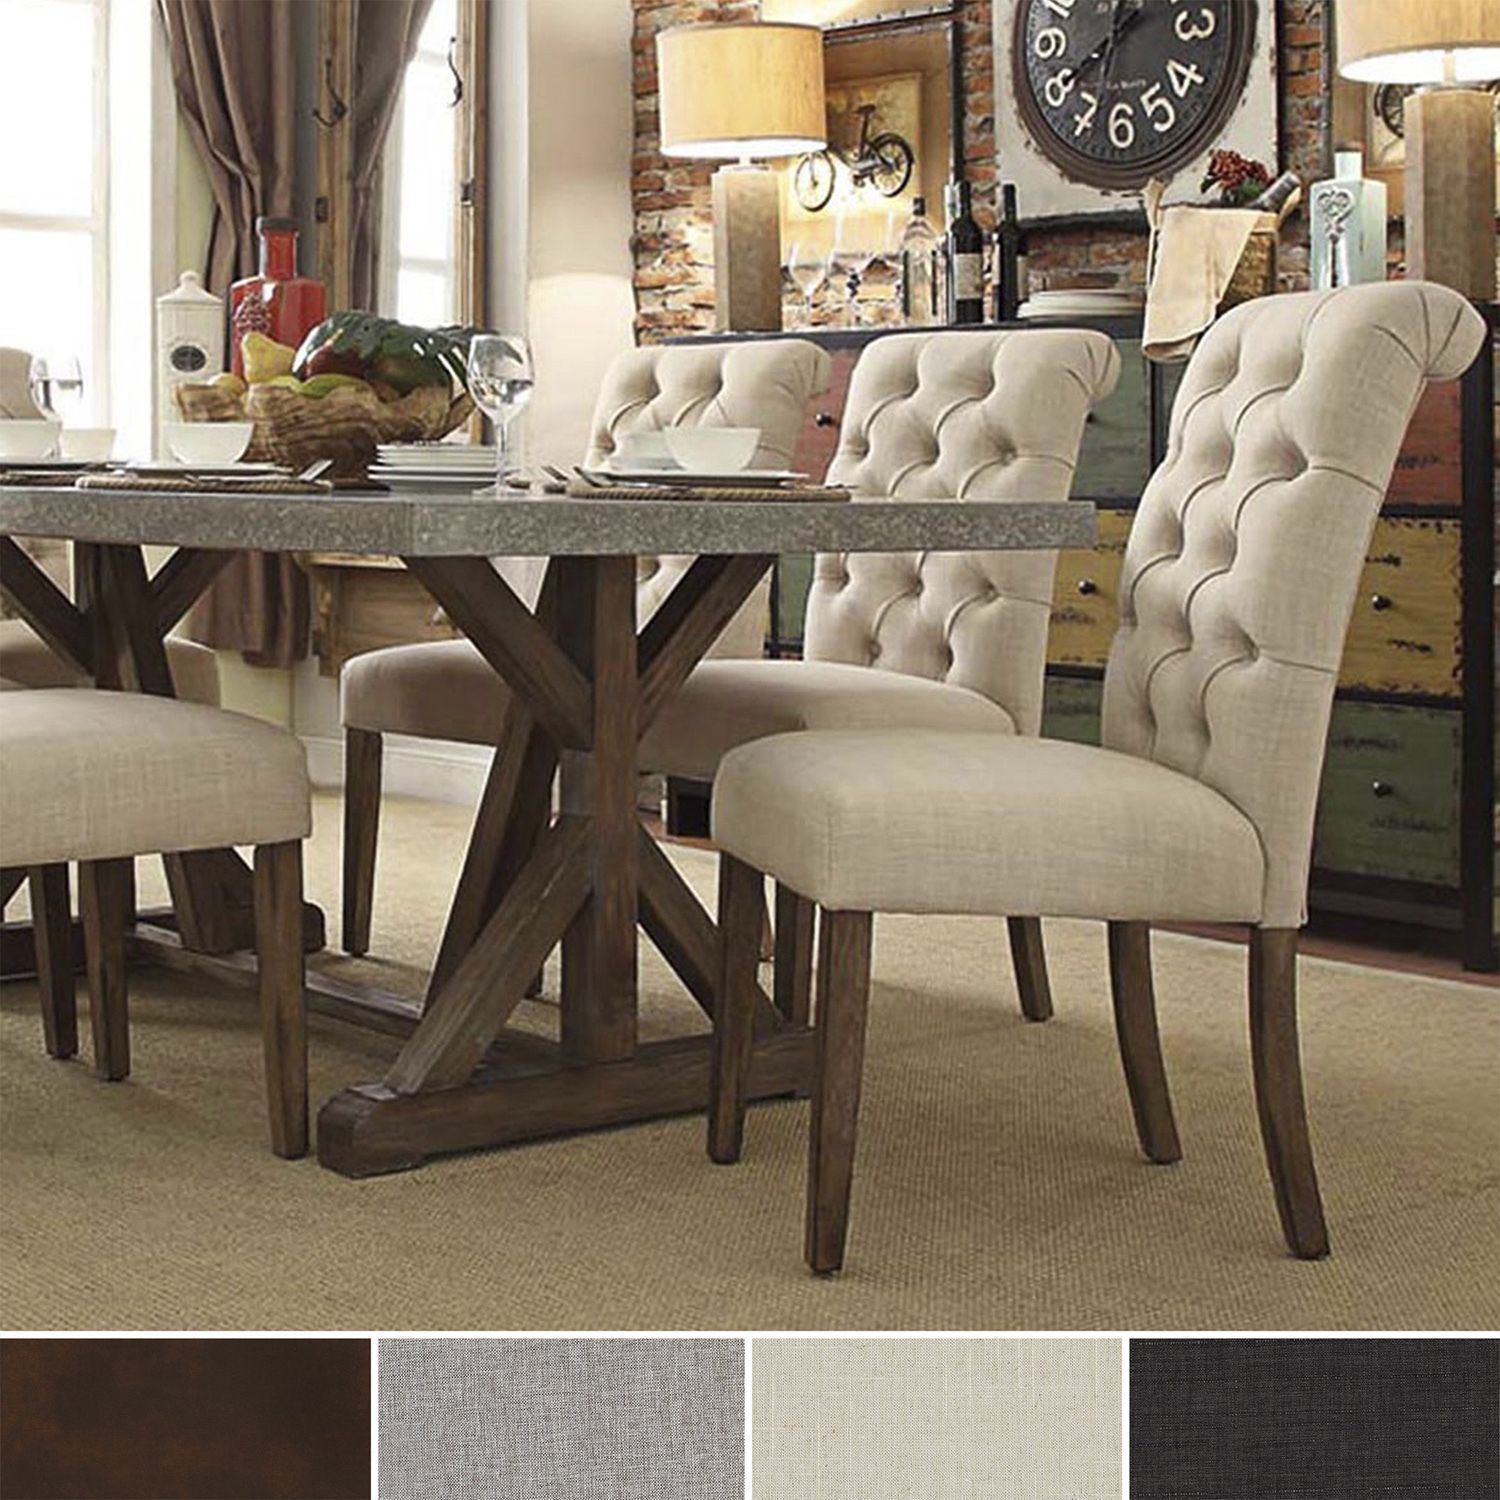 cloth dining room chairs beach lounge chair canopy immerse yourself in the regal manufacturing of this scrolled back armless deep button tufts add a hint sophistication and lends s superior comfort fully upholstered t